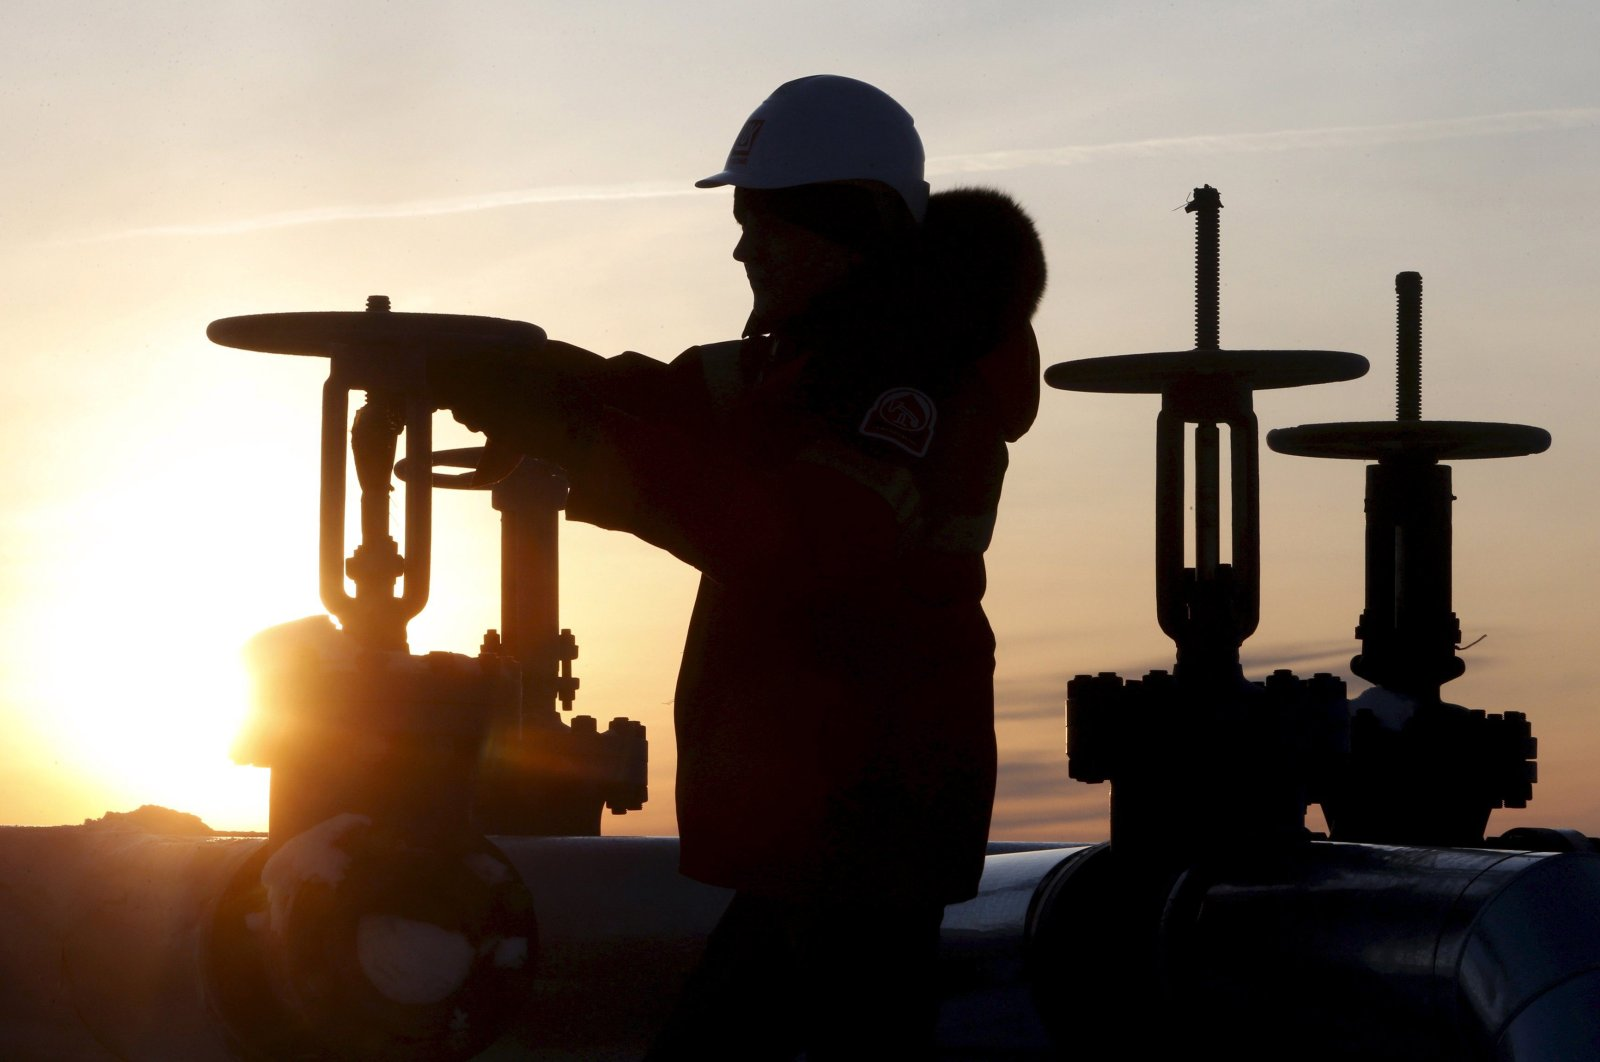 A worker checks the valve of an oil pipe at the Lukoil company-owned Imilorskoye oil field outside the West Siberian city of Kogalym, Russia, Jan. 25, 2016. (Reuters Photo)